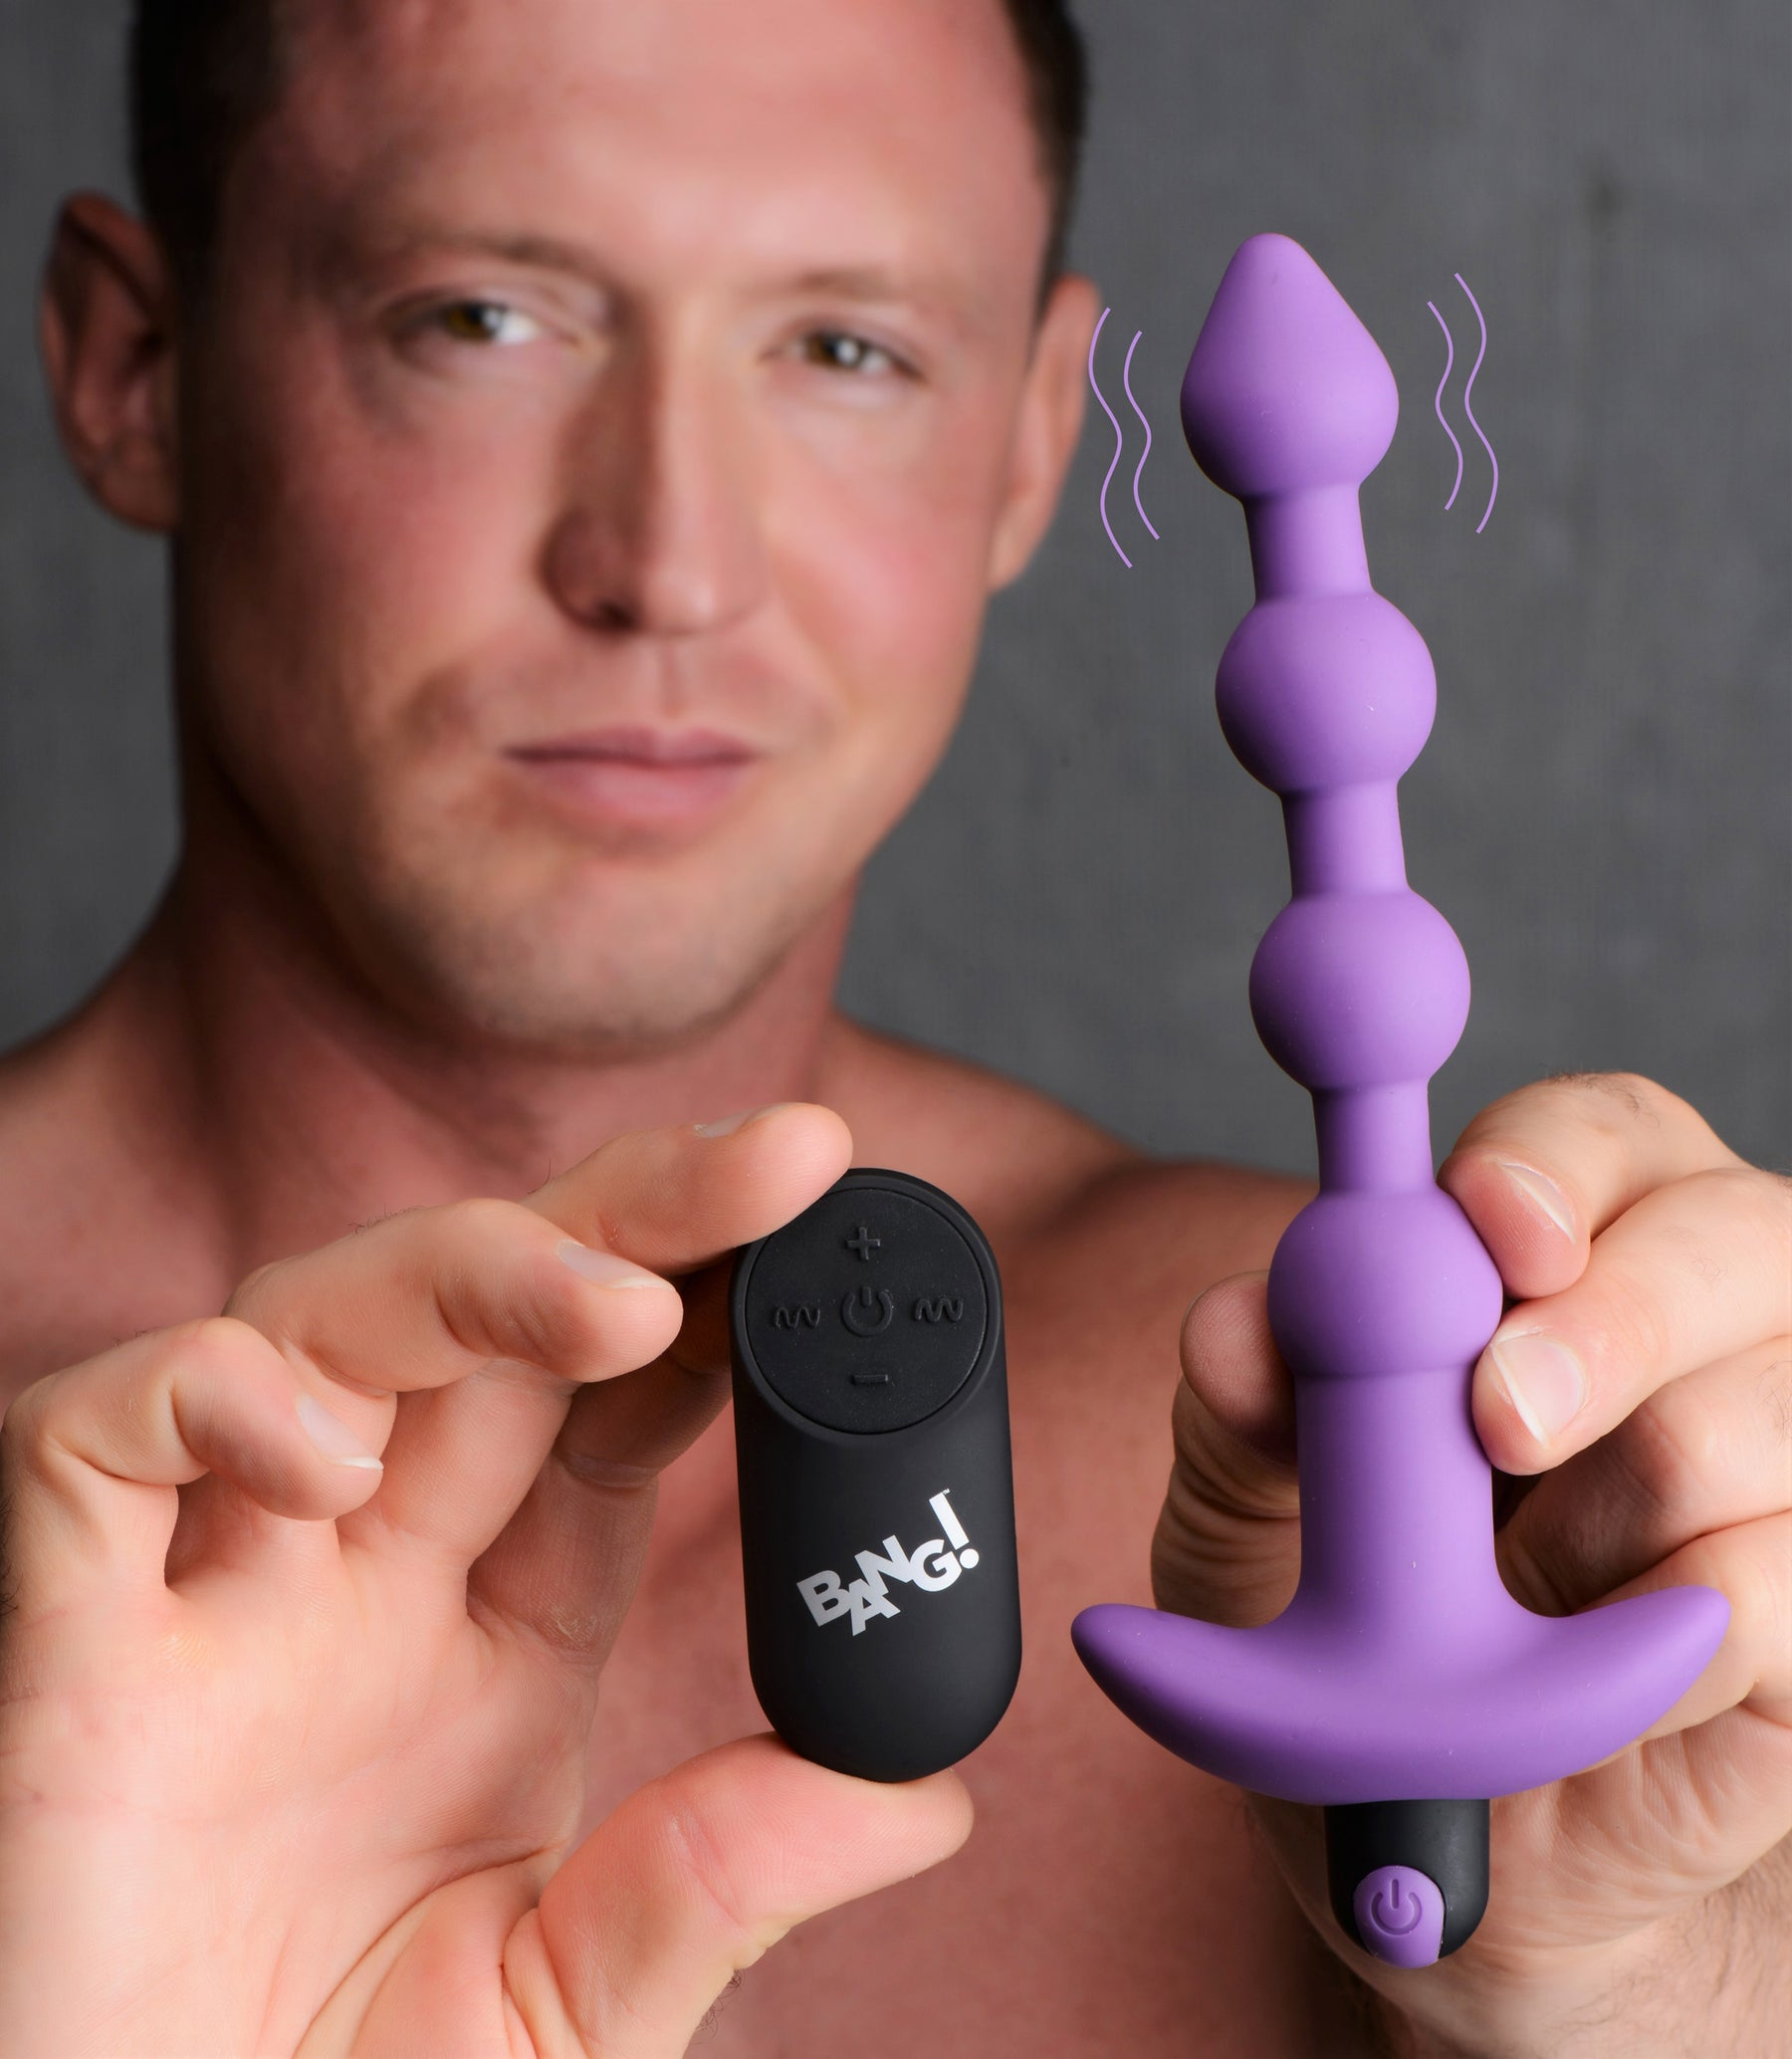 Bang - Vibrating Silicone Anal Beads and Remote Control - Purple